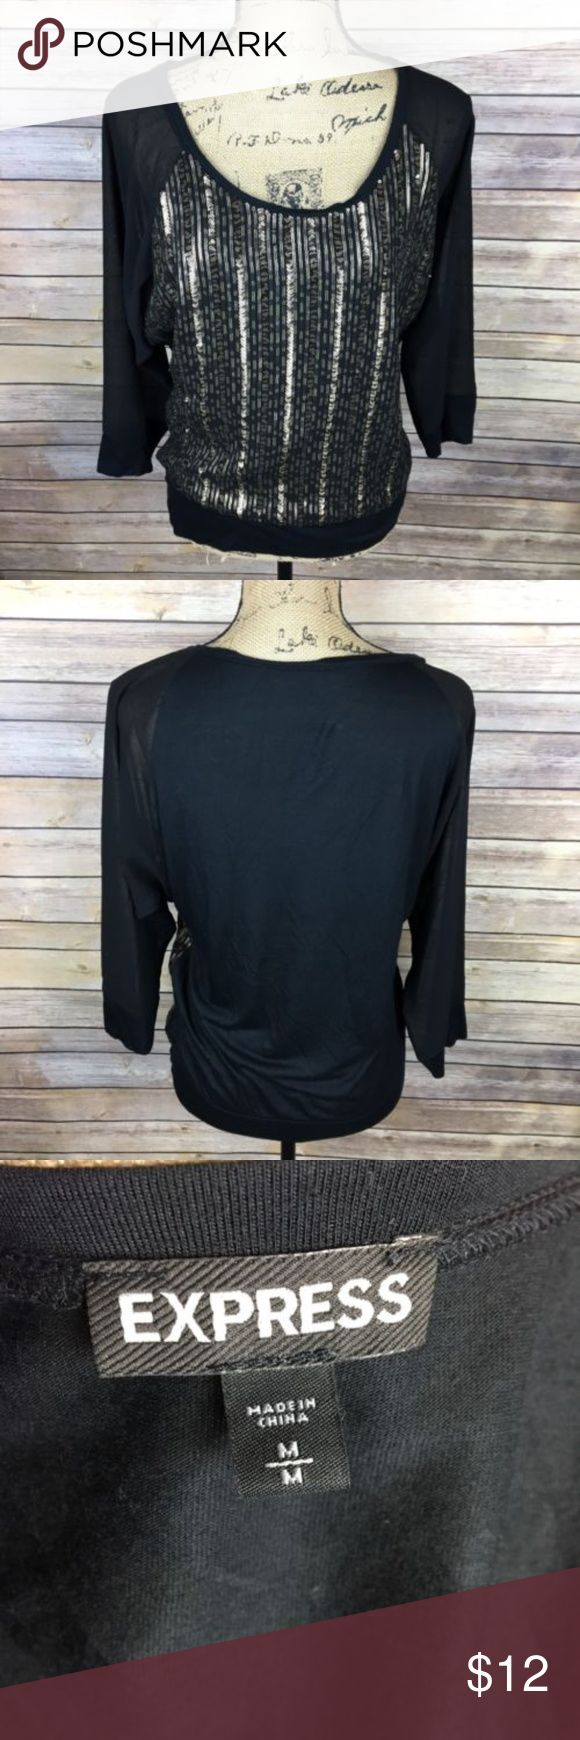 288 Best My Posh Closet Images On Pinterest Bpoi The Colours Of Indonesia Tees Black Express Knit Top Size Medium Gold Sequin